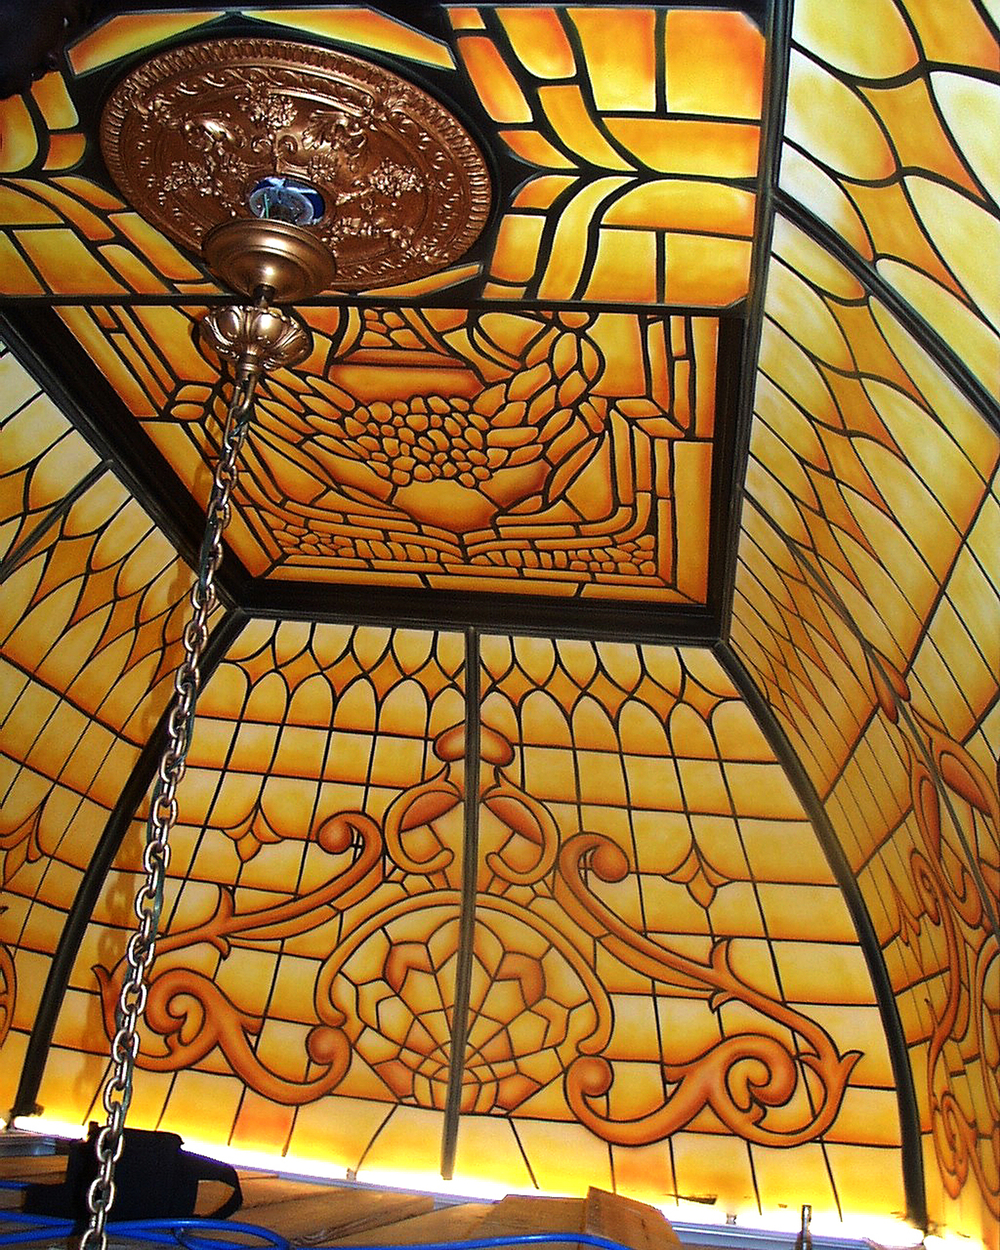 Stain Glass Ceiling 8' x 12' opening.jpg